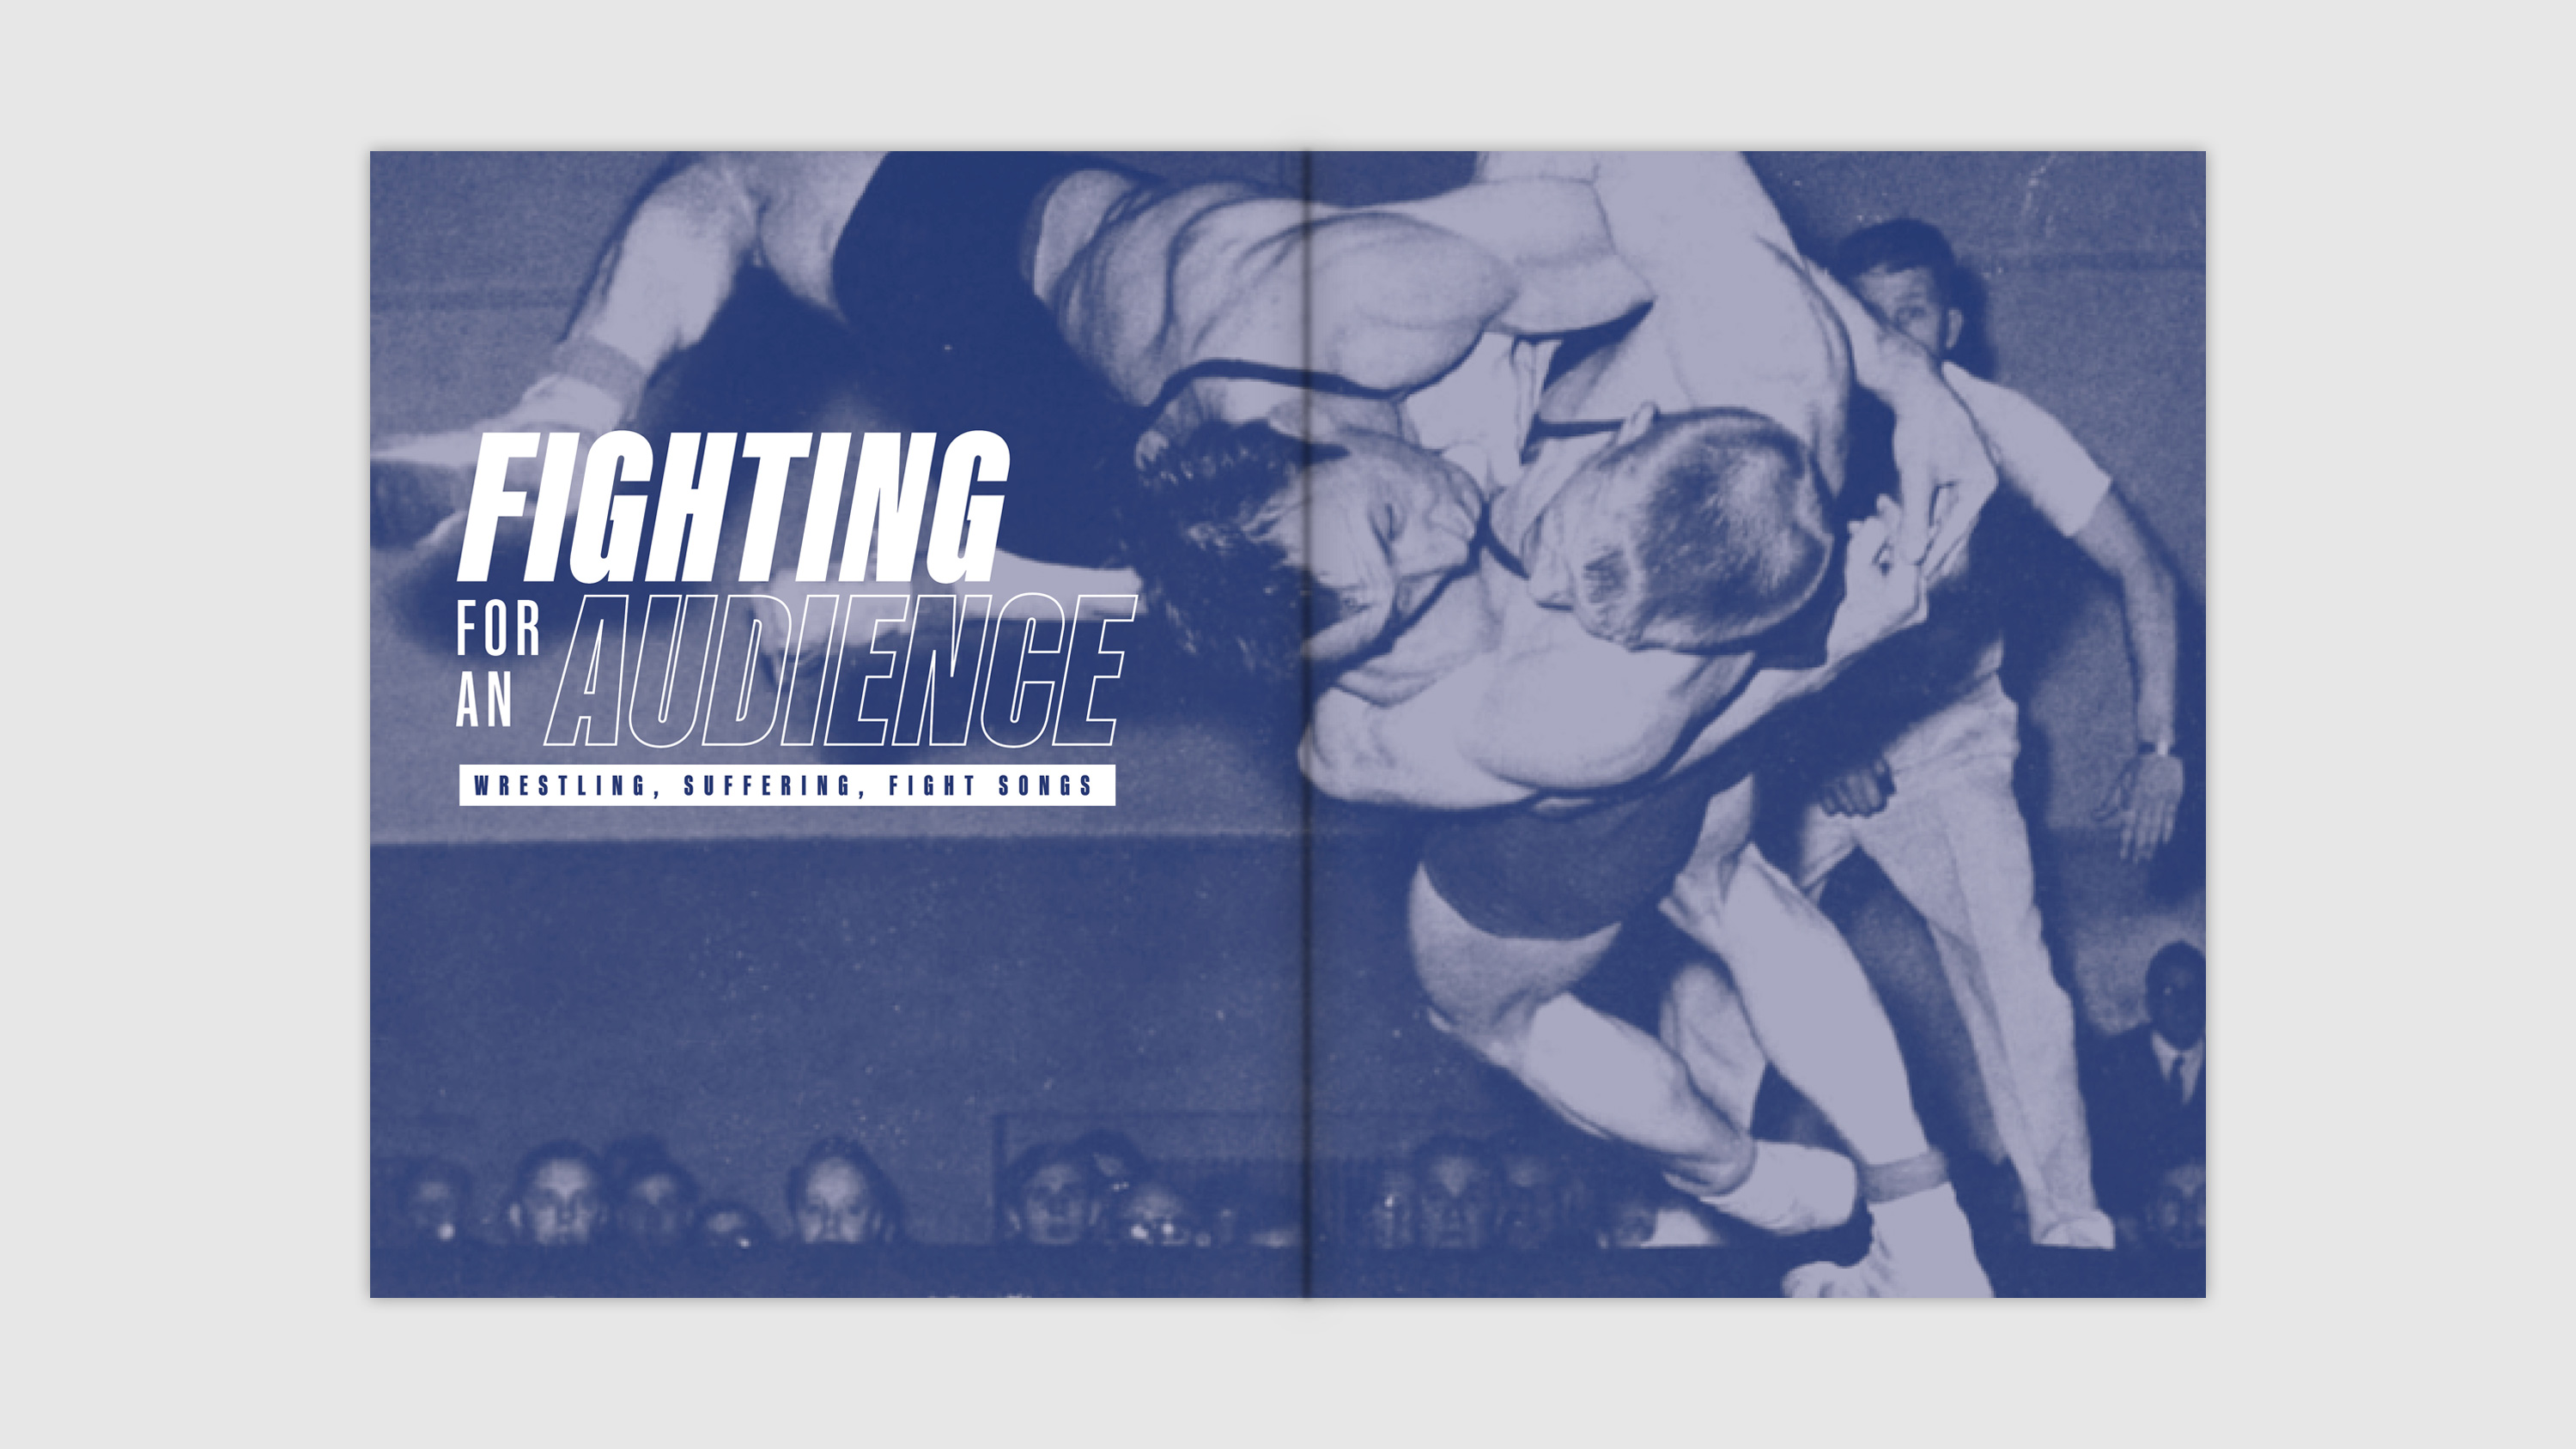 Title spread against blue photo